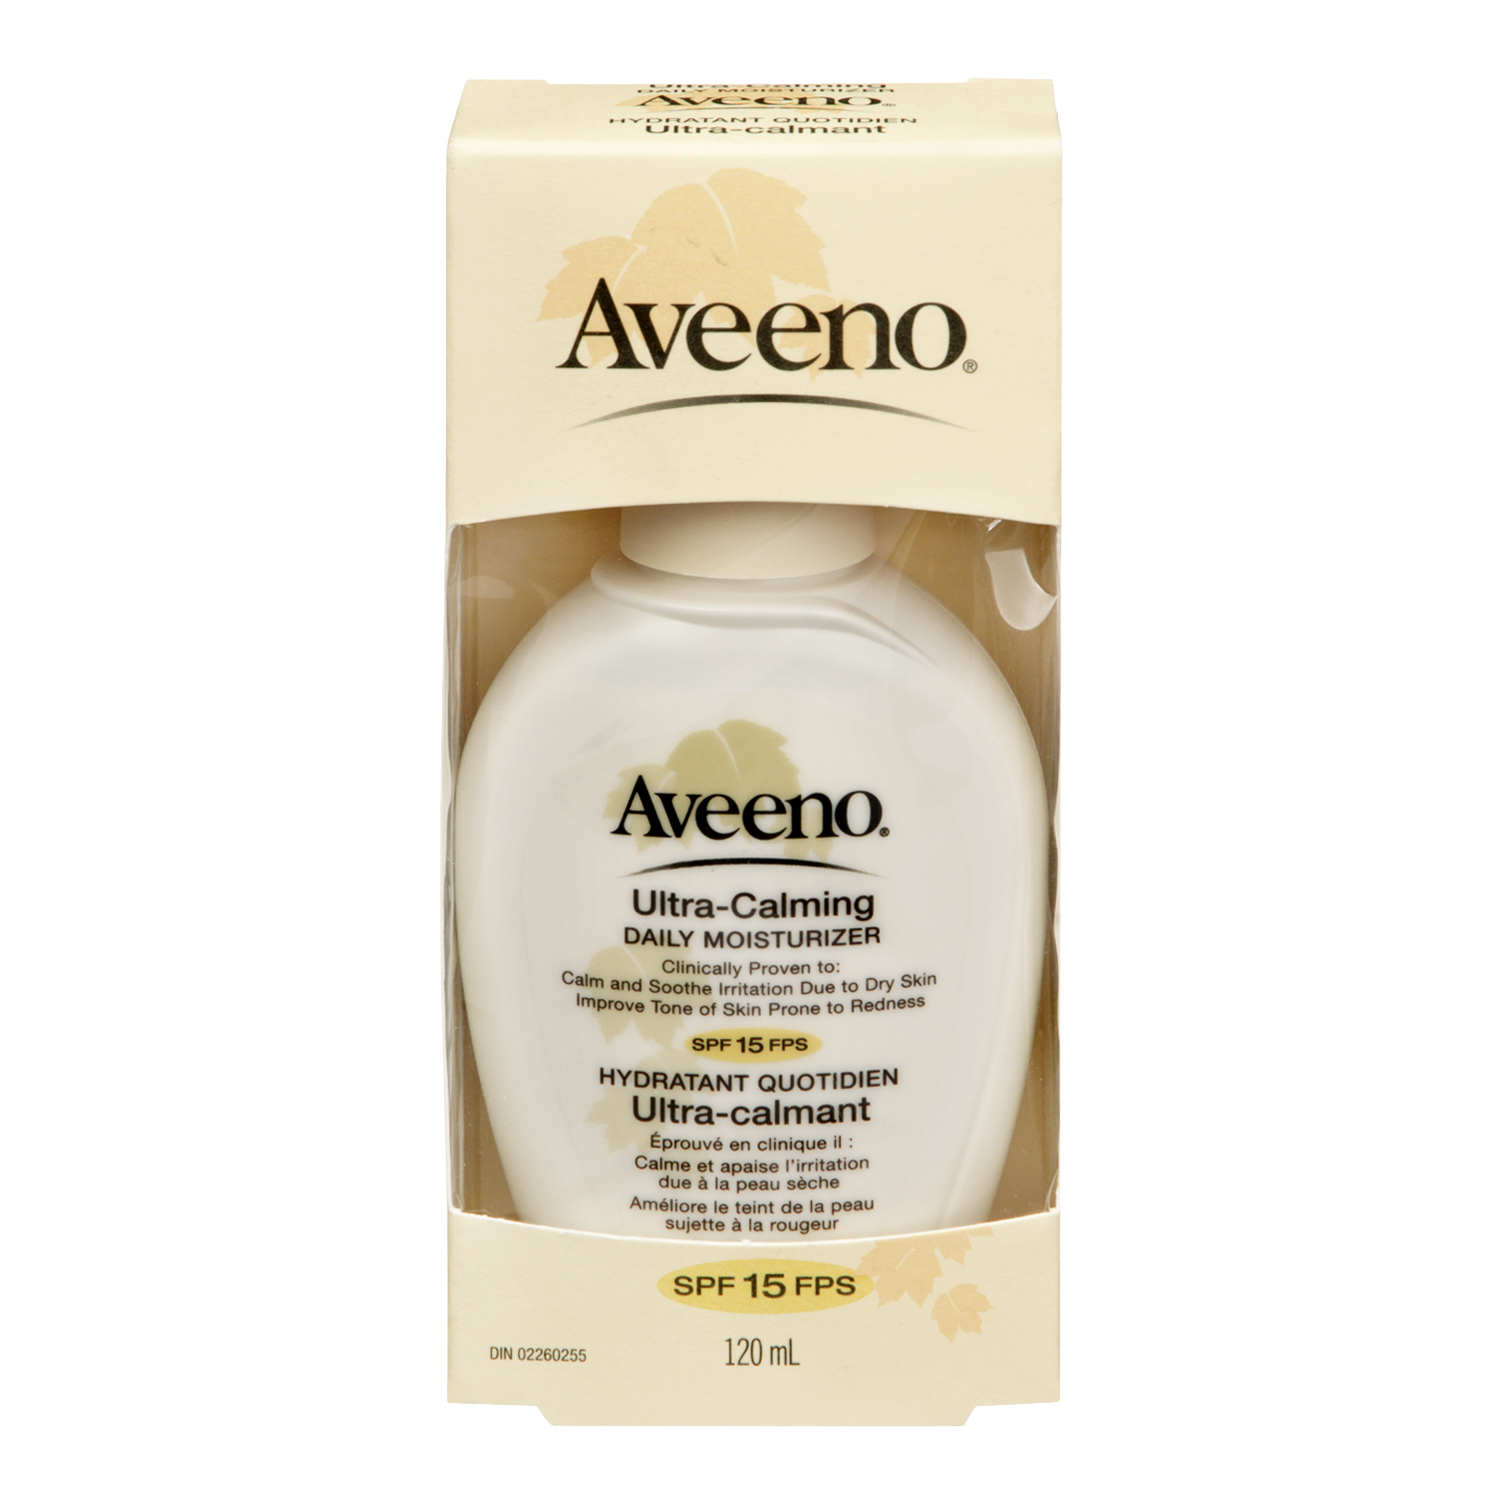 Aveeno Ultra-Calming Daily Moisturizer, with SPF 15, 120 mL